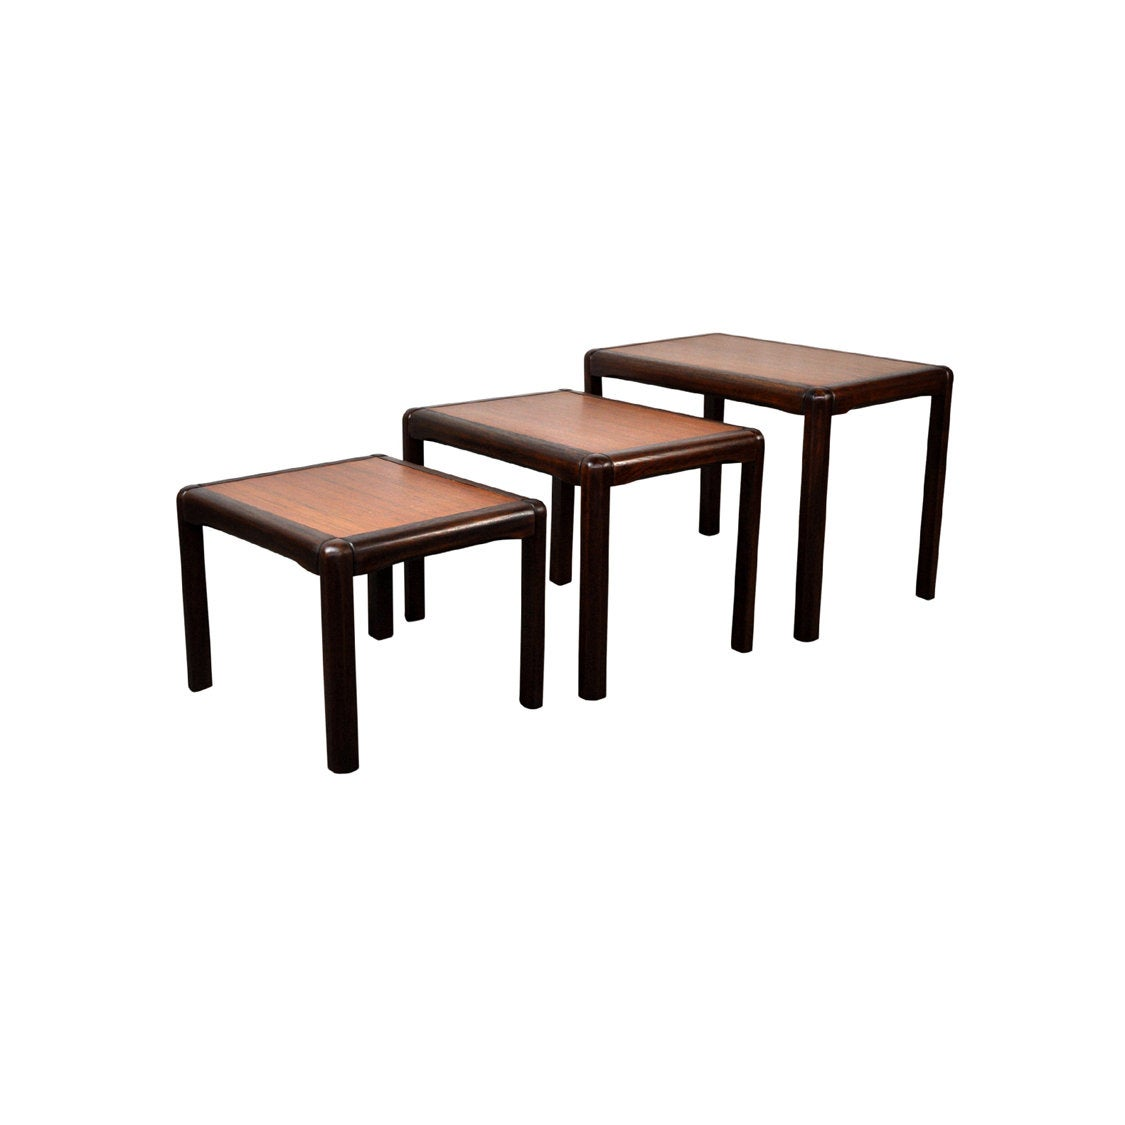 Danish Teak Nesting Tables - AndersBrowne Mid Century Furniture